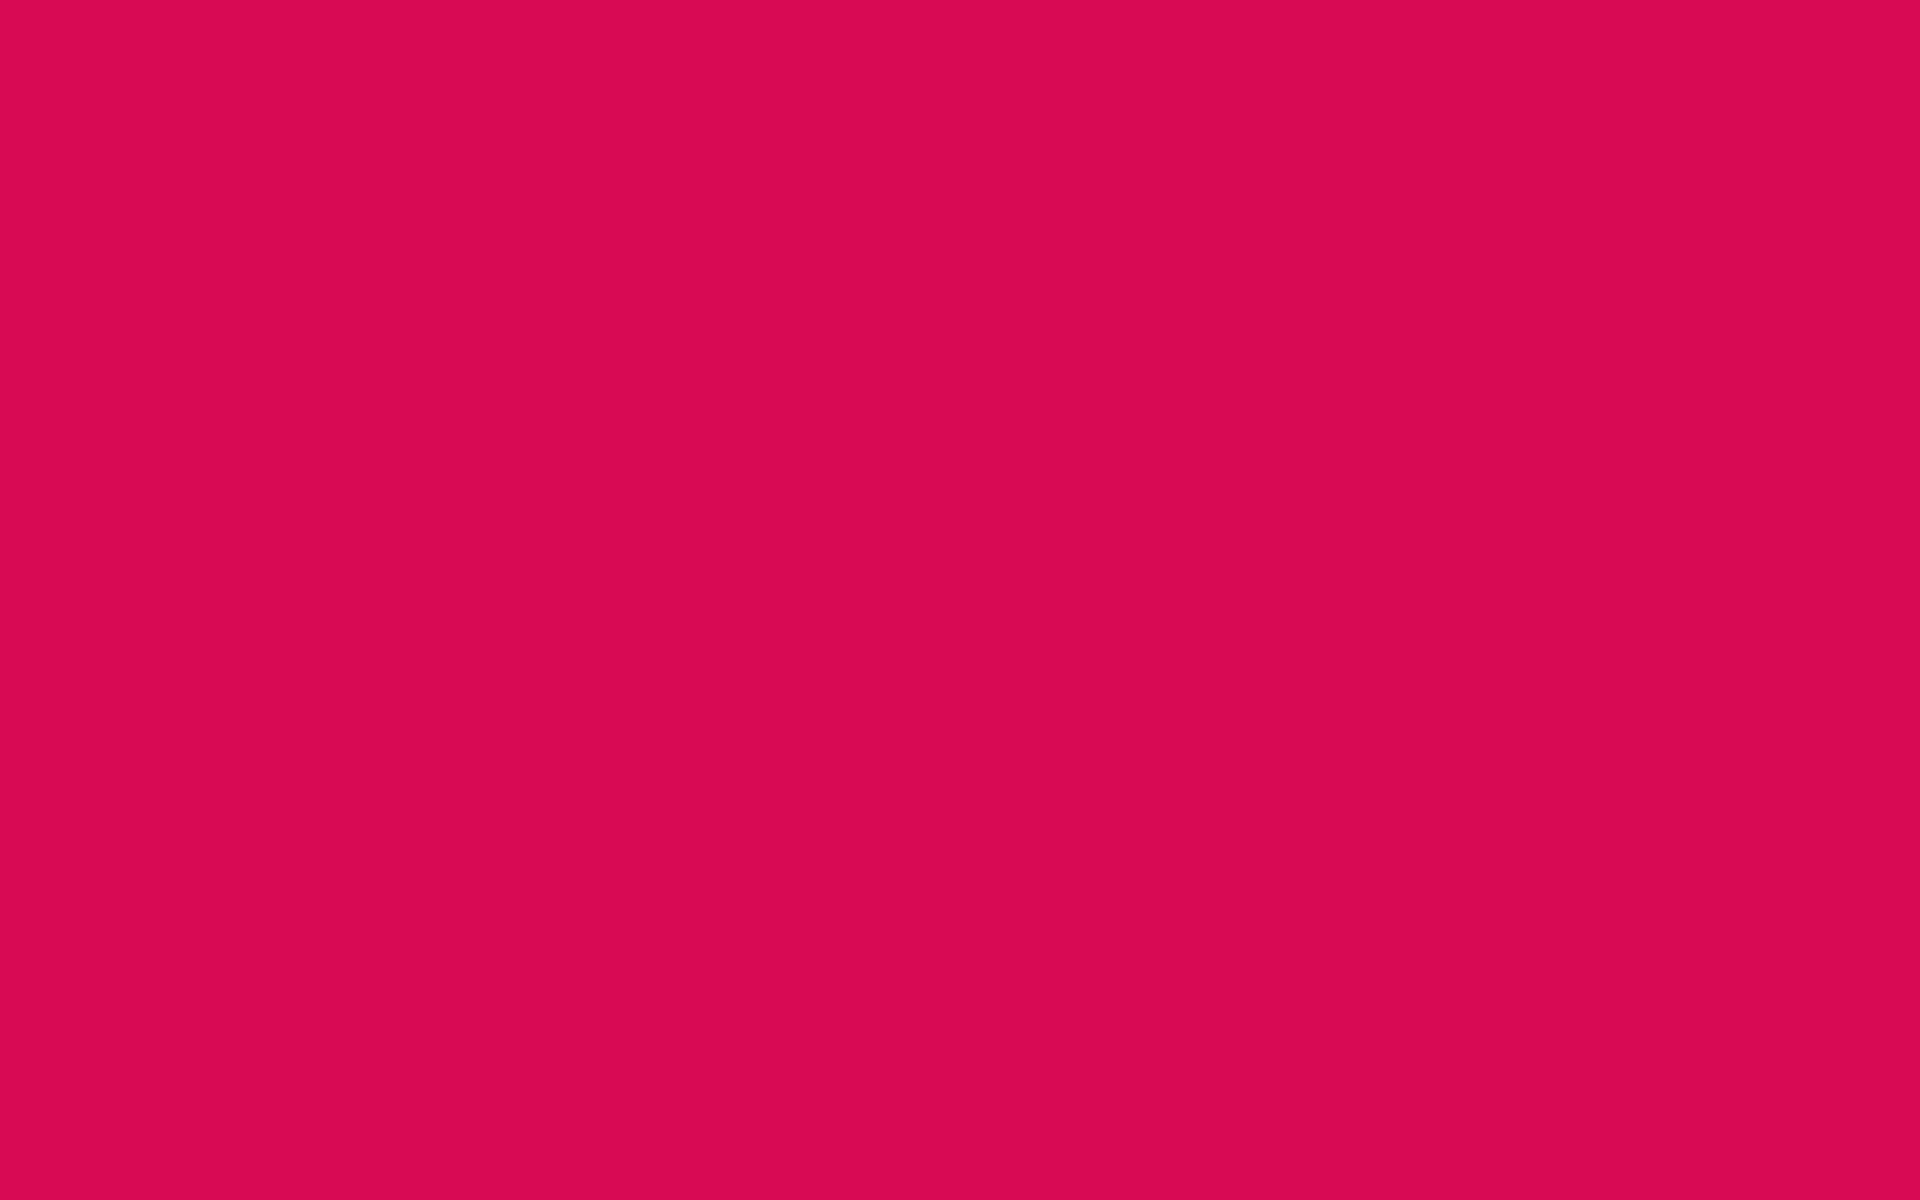 1920x1200 Debian Red Solid Color Background